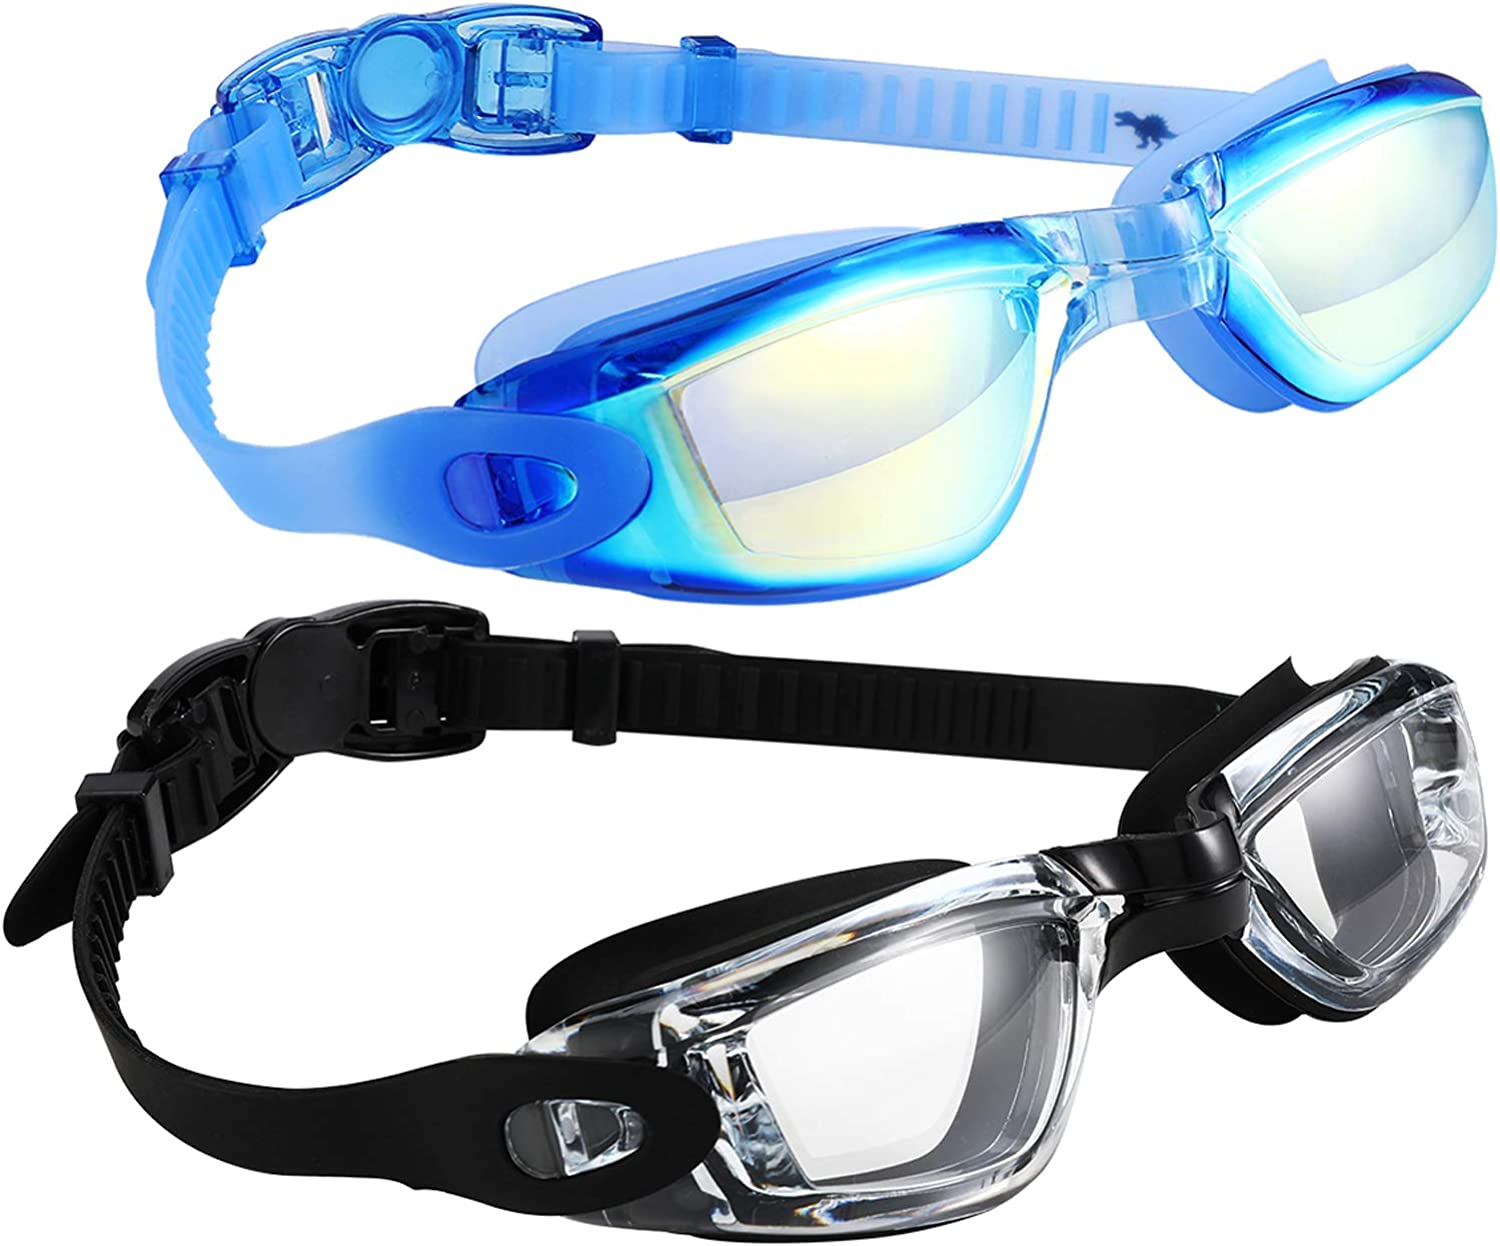 Anti Fog Waterproof UV Protection Mirrored Clear Vision Triathlon Goggles Swim Goggles 2 Pack No Leaking Swimming Goggles for Adult Men Women Youth